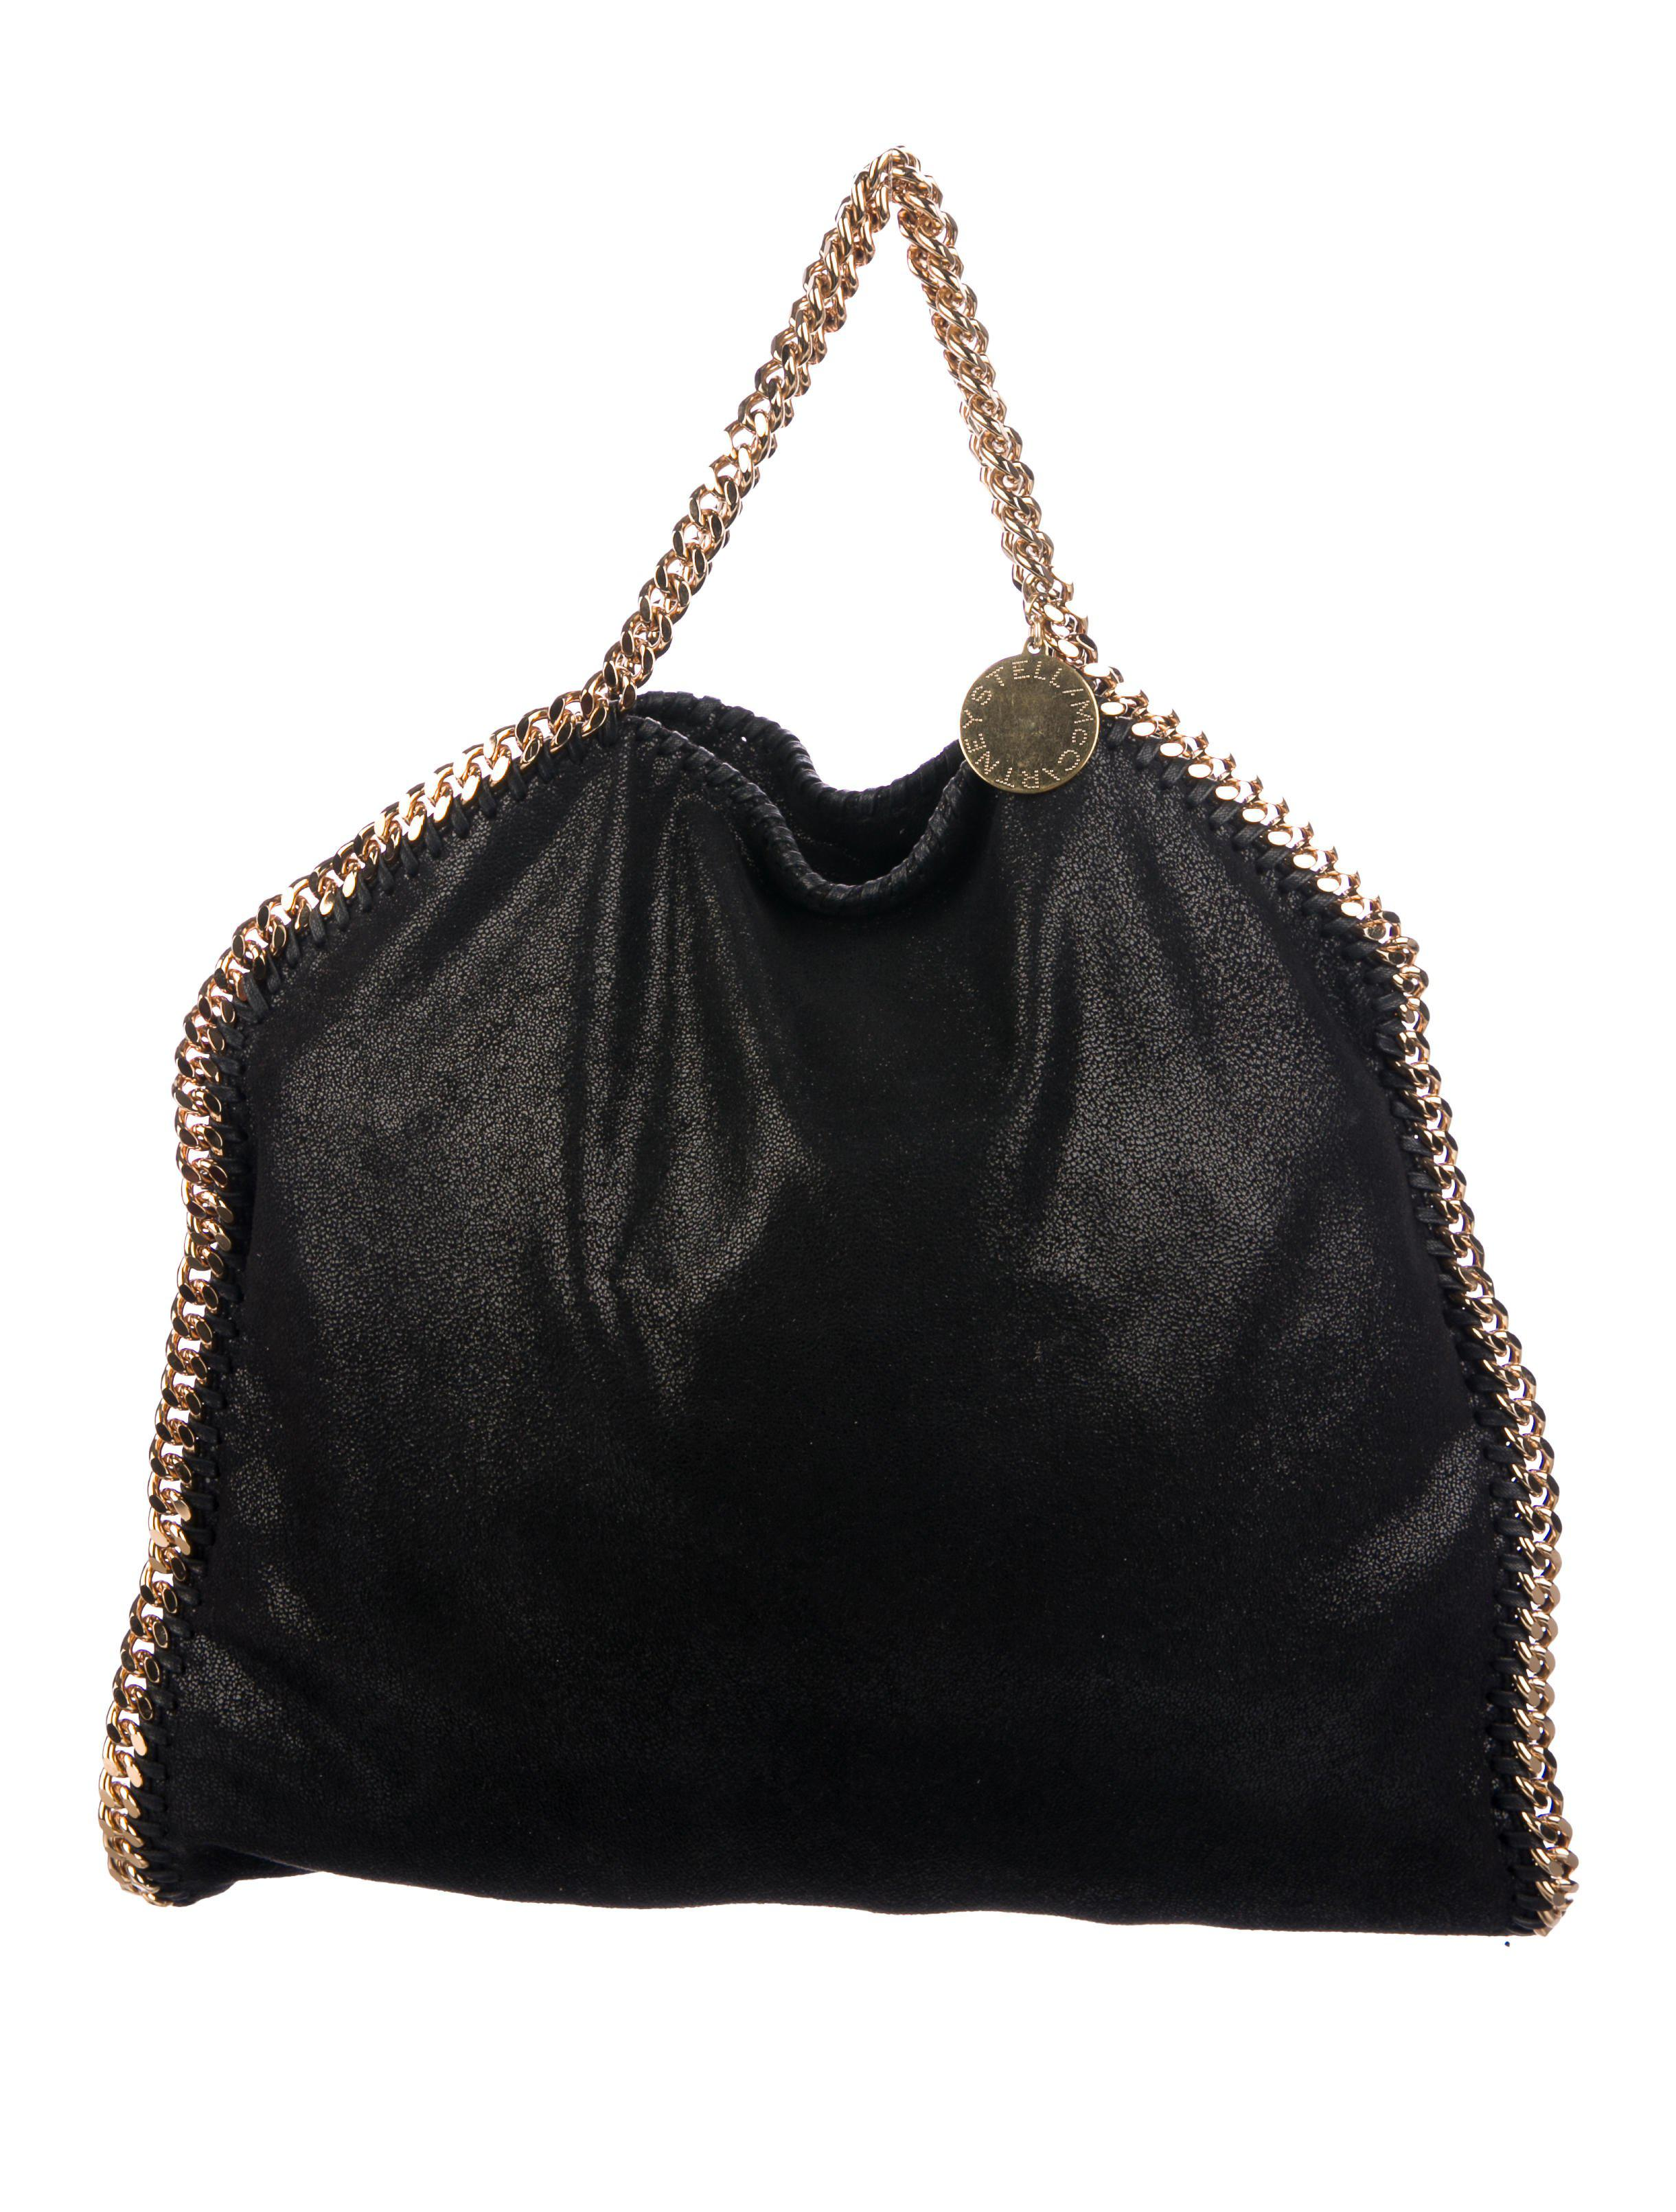 Lyst - Stella Mccartney Falabella Satchel Black in Metallic 7f551b85db2a8